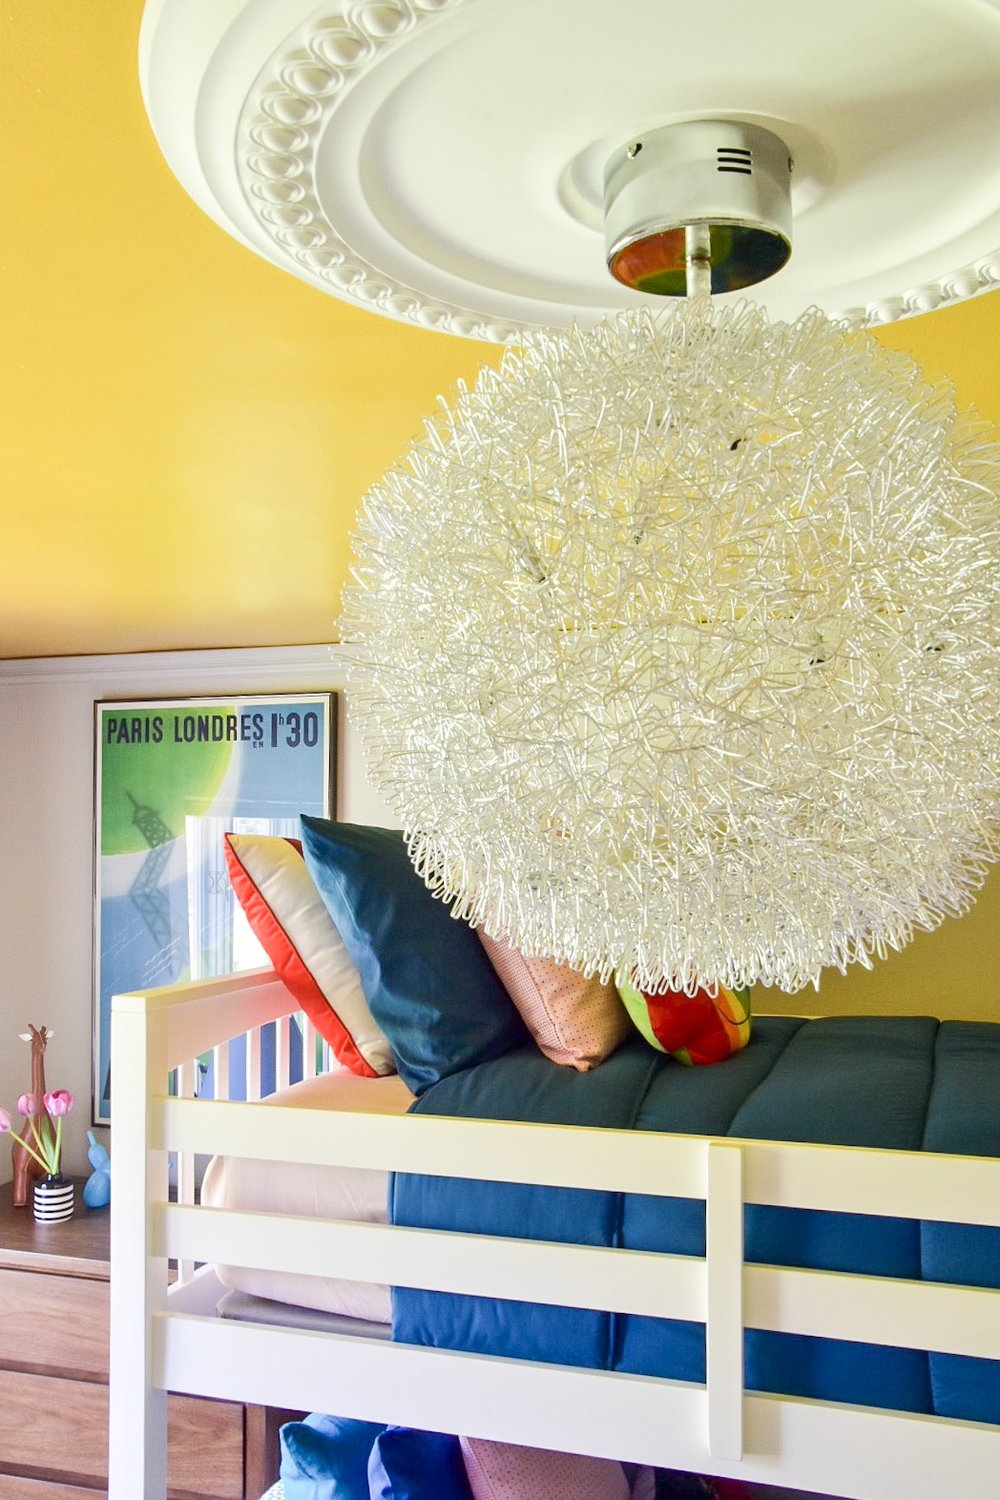 IMG_7284.JPGEclectic modern Colorful kids room modern chandelier and yellow painted ceiling by Diane Rath The Rath Project